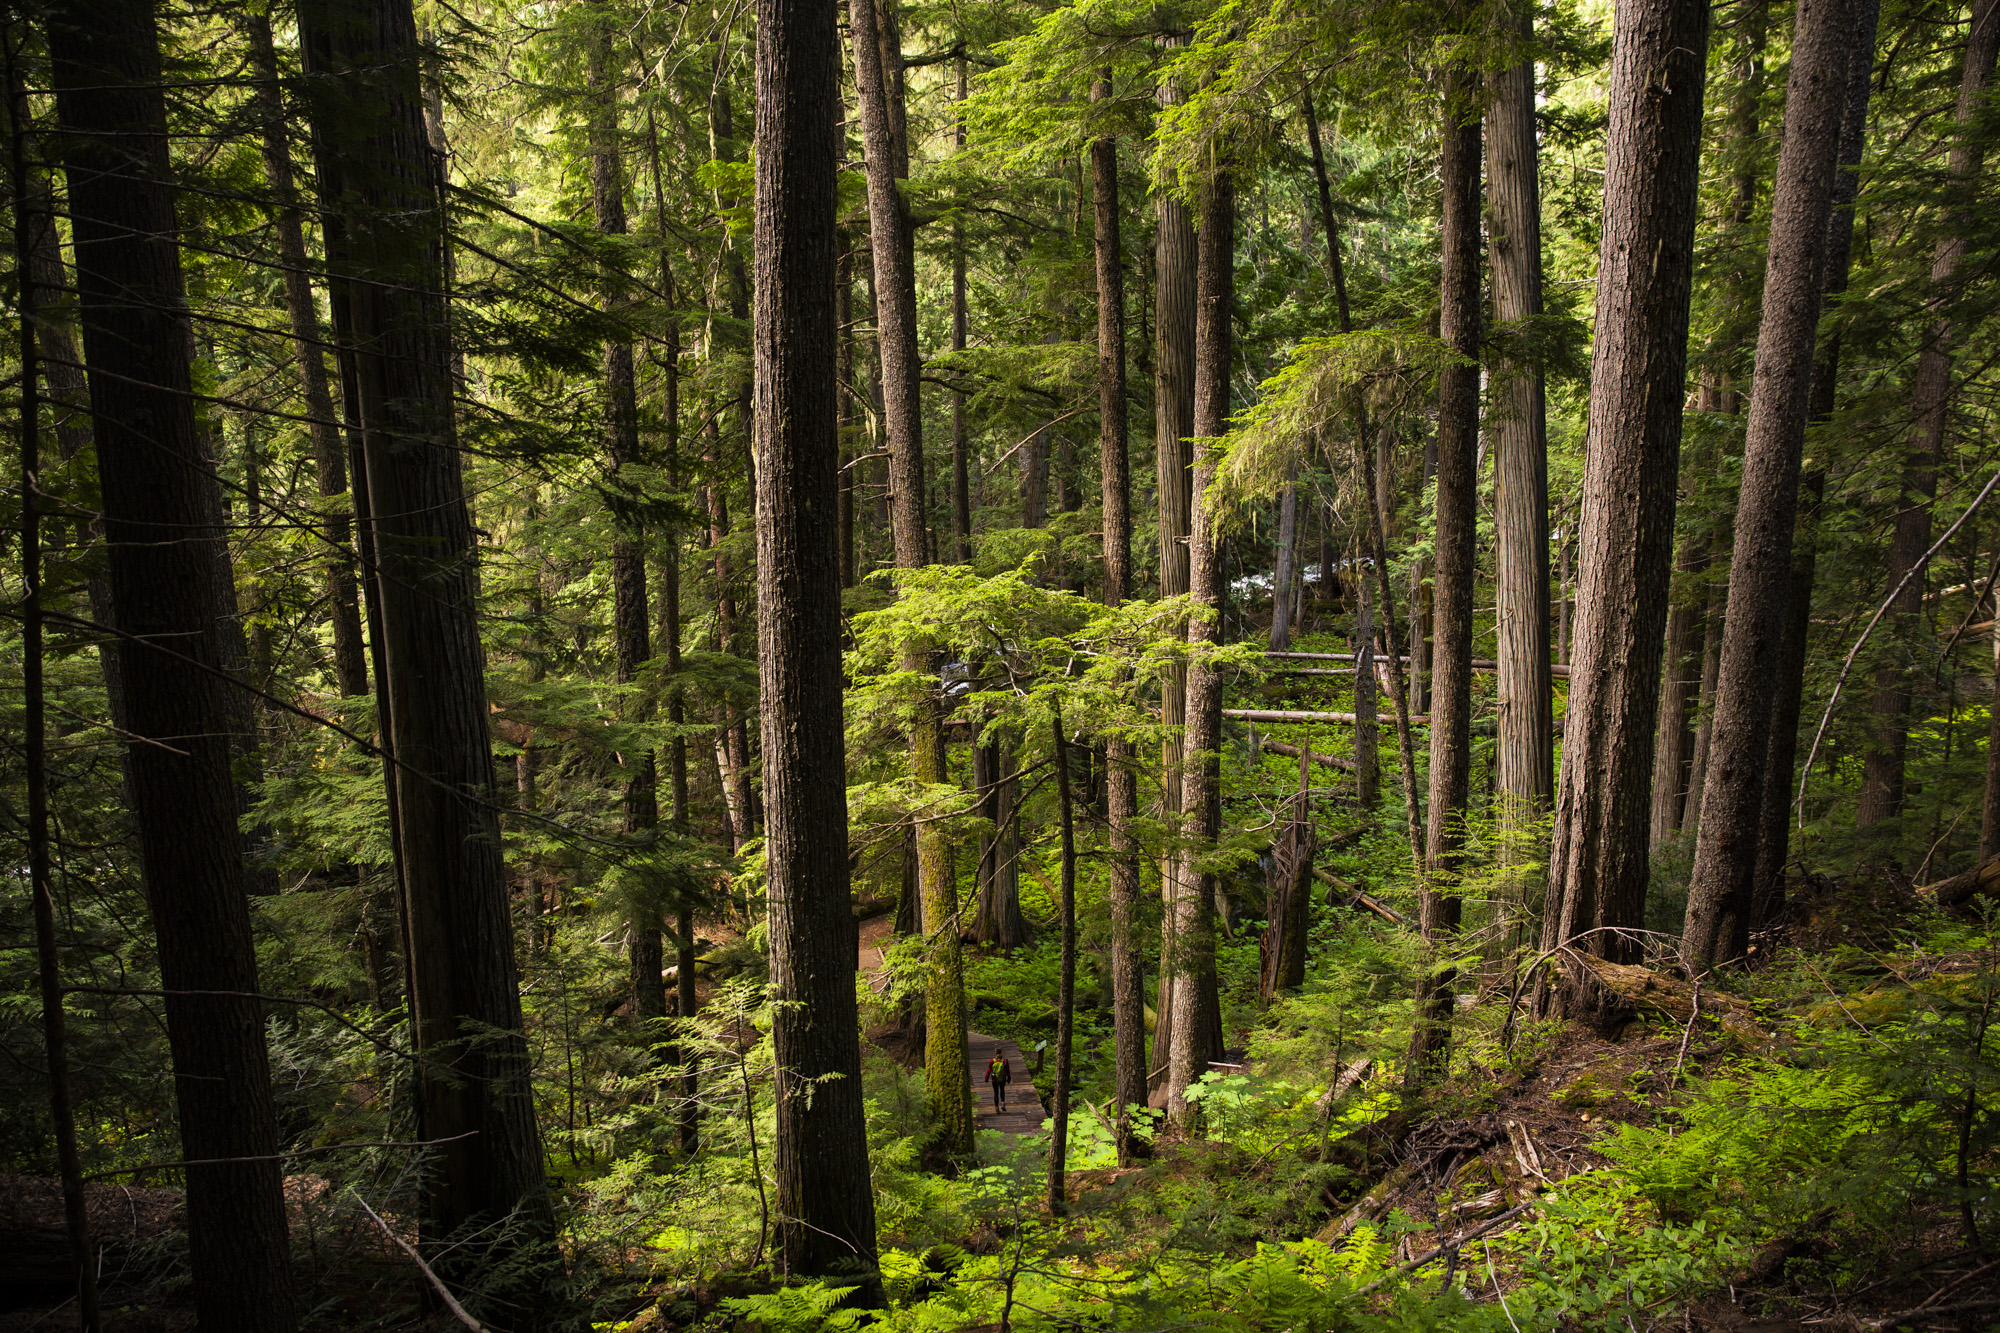 Protect the Rainforest - The Caribou Rainforest is the last remaining inland temperate rainforest on planet Earth. British Columbia plans to continue to log old growth rainforest for the next 30-40 years. Take Action: Ancient Forest Alliance→Take Action: West Kootenay's Ecosociety →